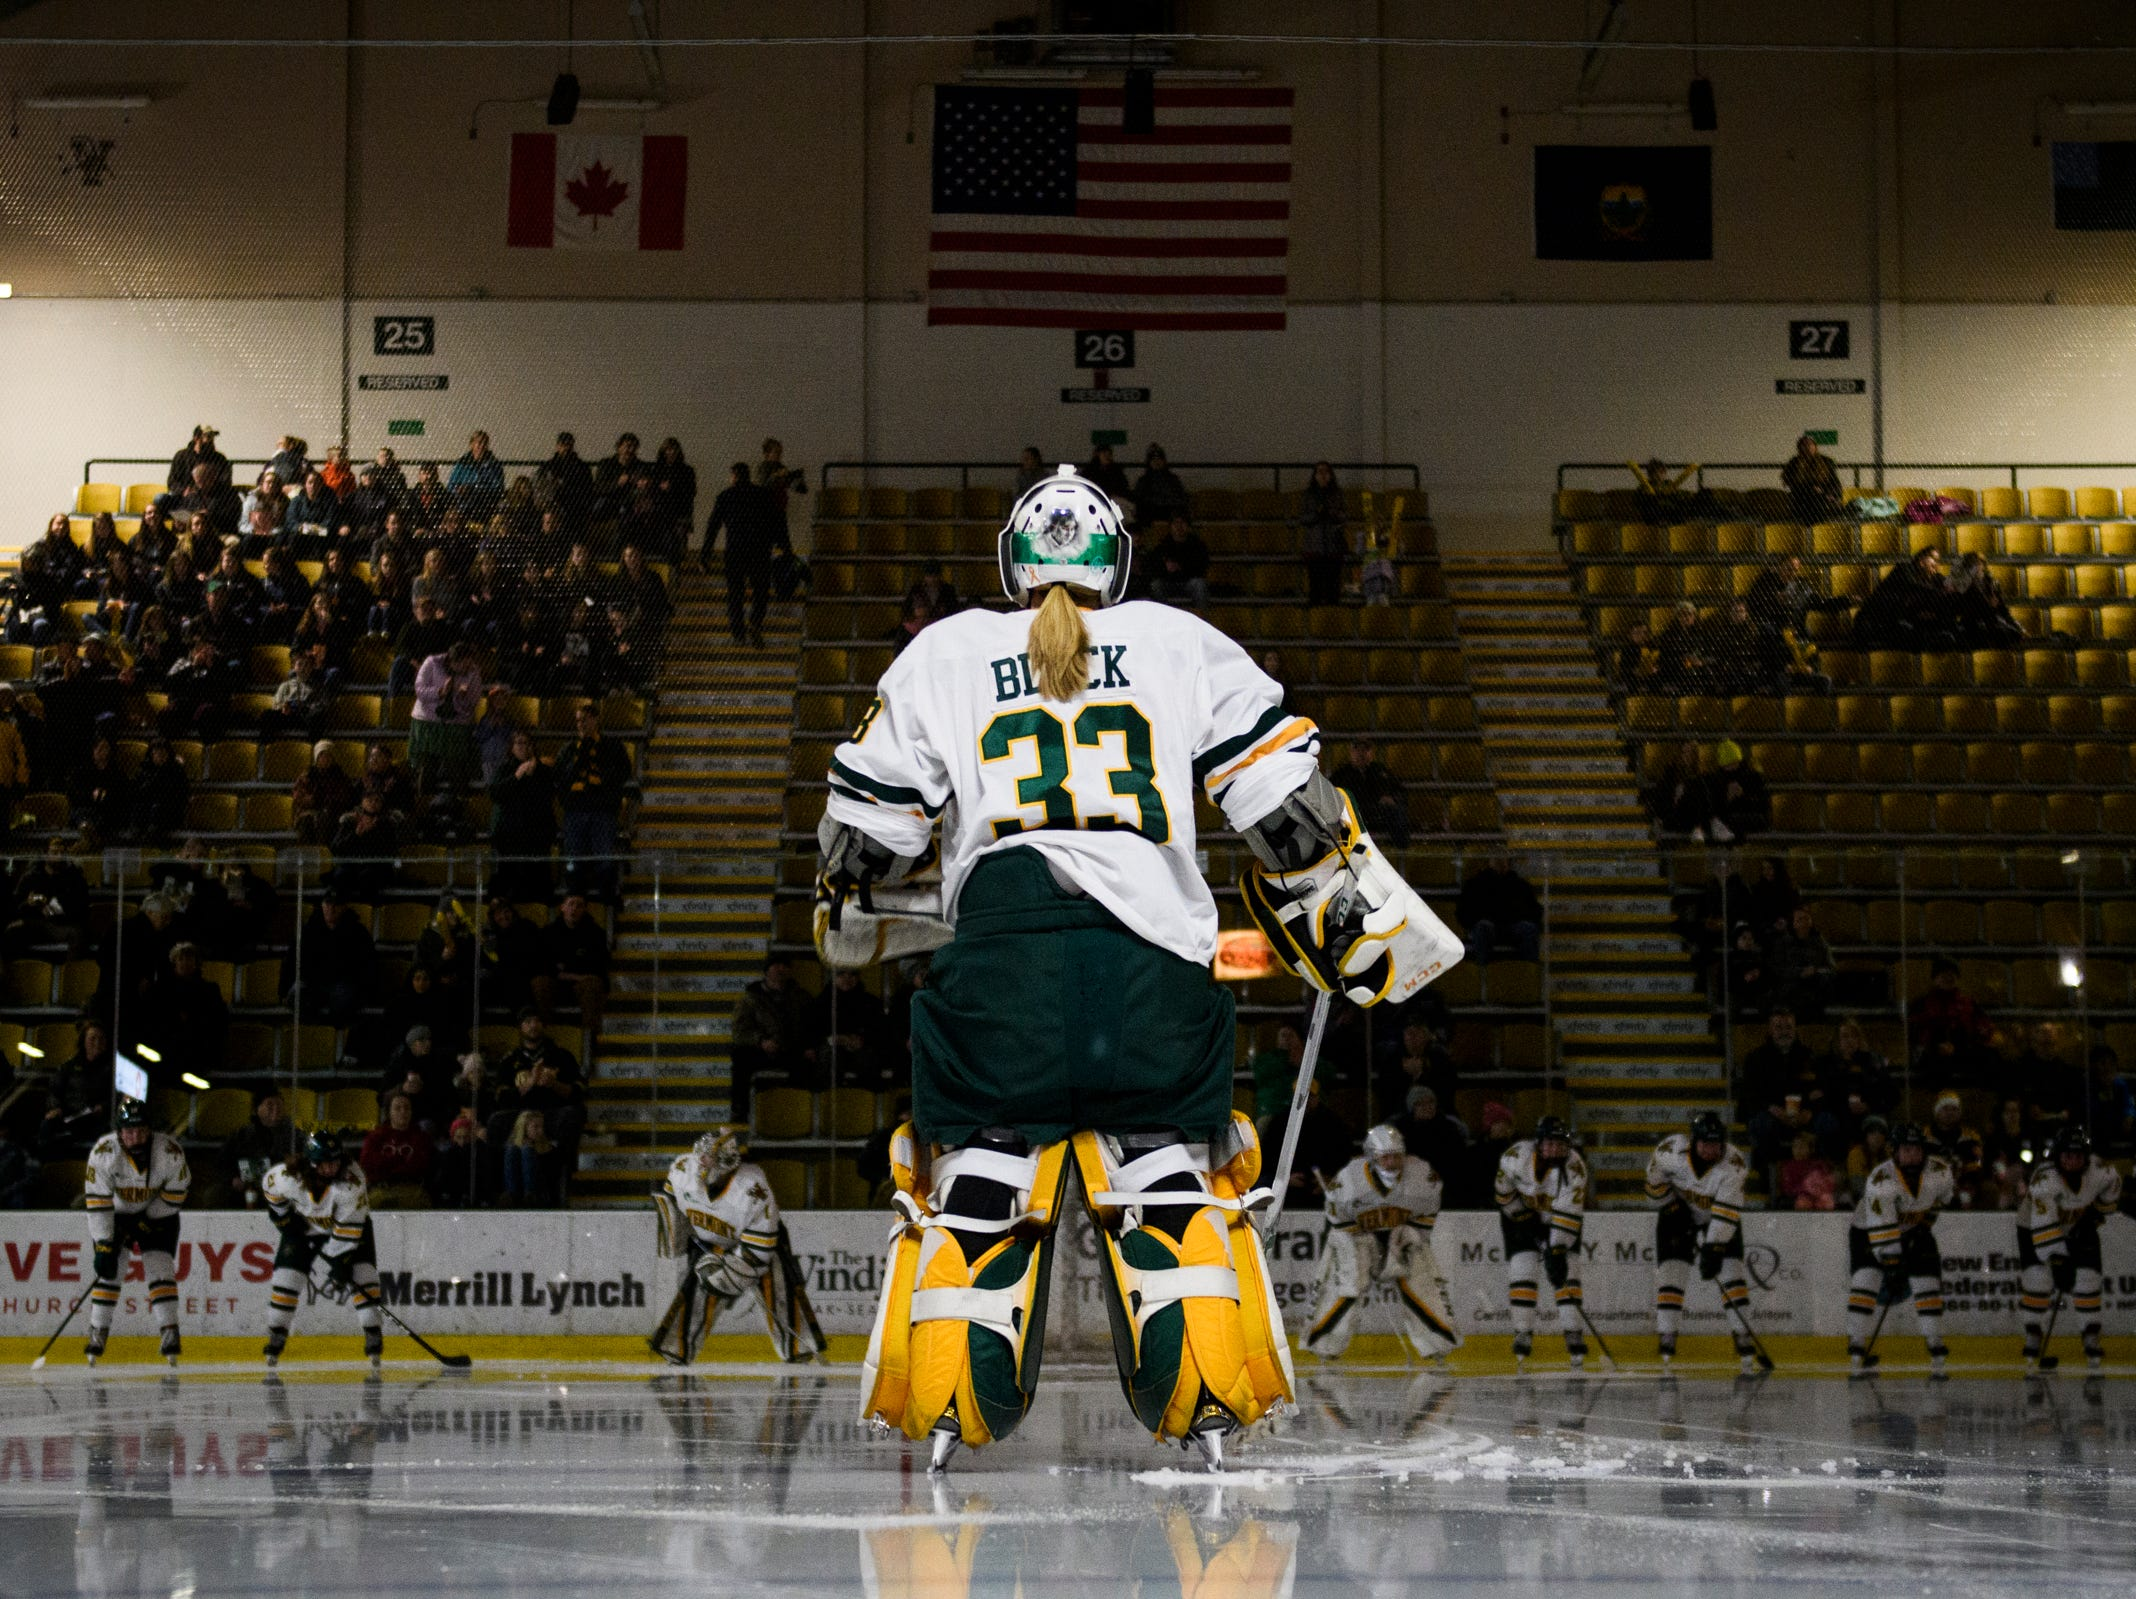 Vermont goalie Melissa Black (33) in introduced during the women's hockey game between the Boston Terriers and the Vermont Catamounts at Gutterson Field House on Friday night February 1, 2019 in Burlington, Vermont.